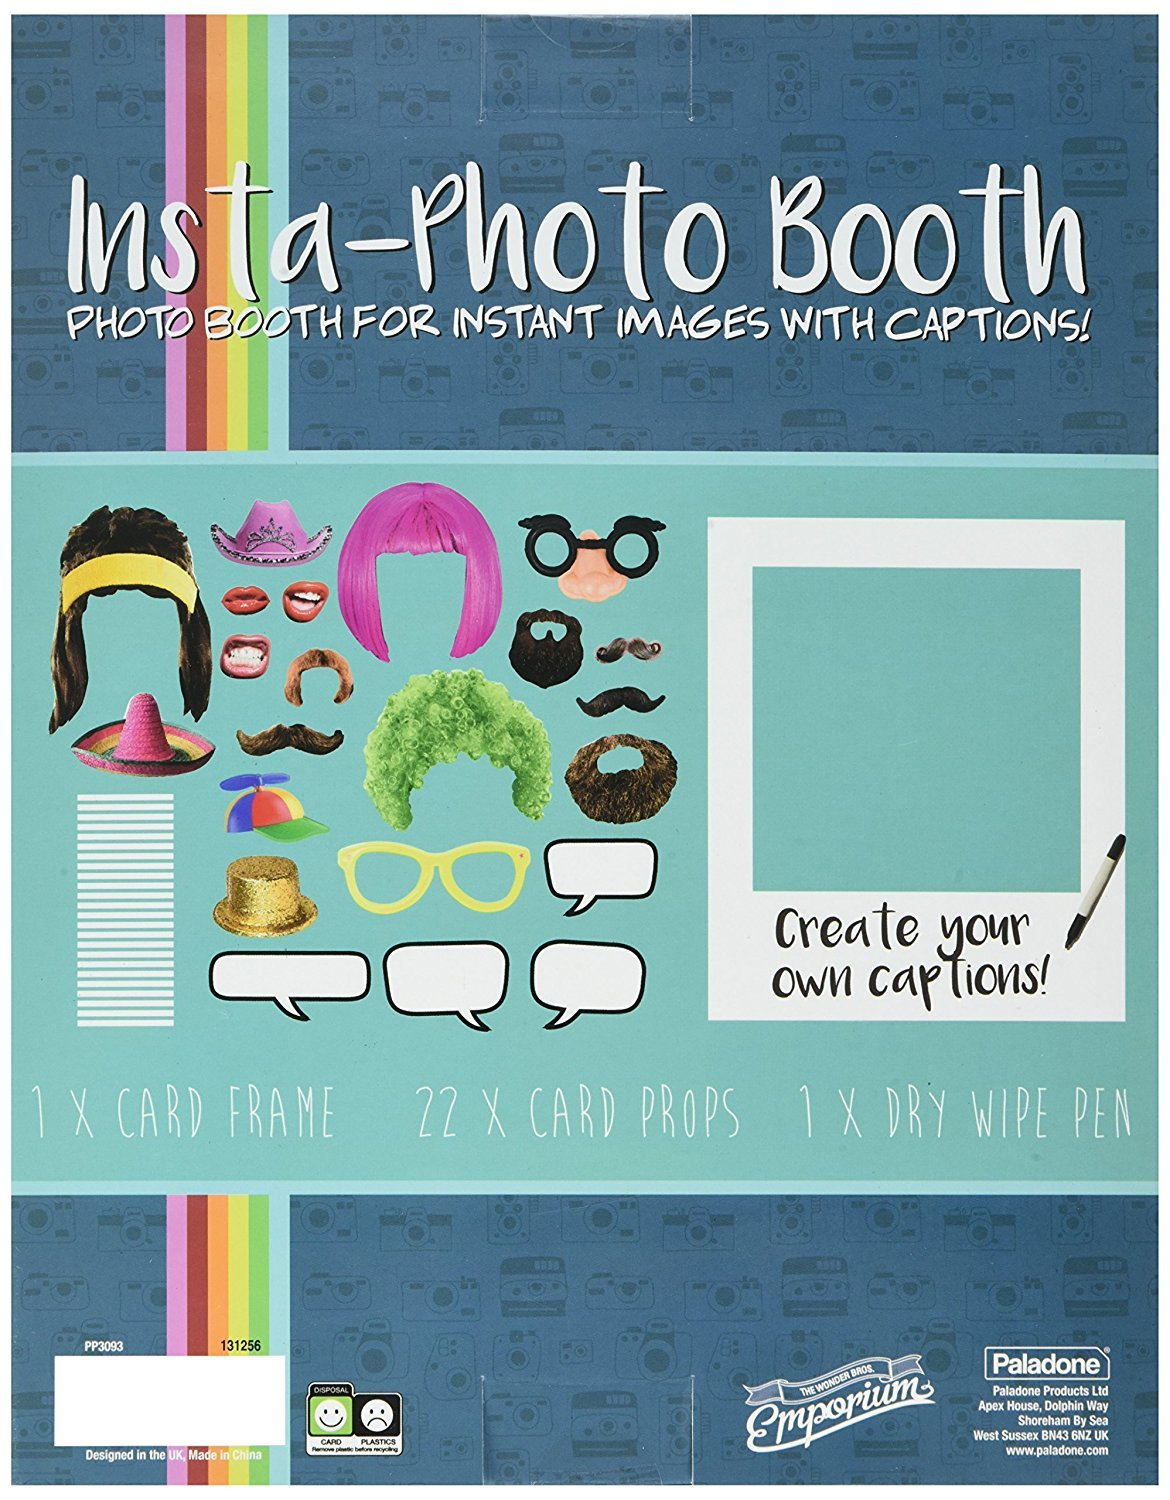 Paladone Insta Photobooth Props & Frame - Includes 22 Props and a Dry Erase Photo Frame